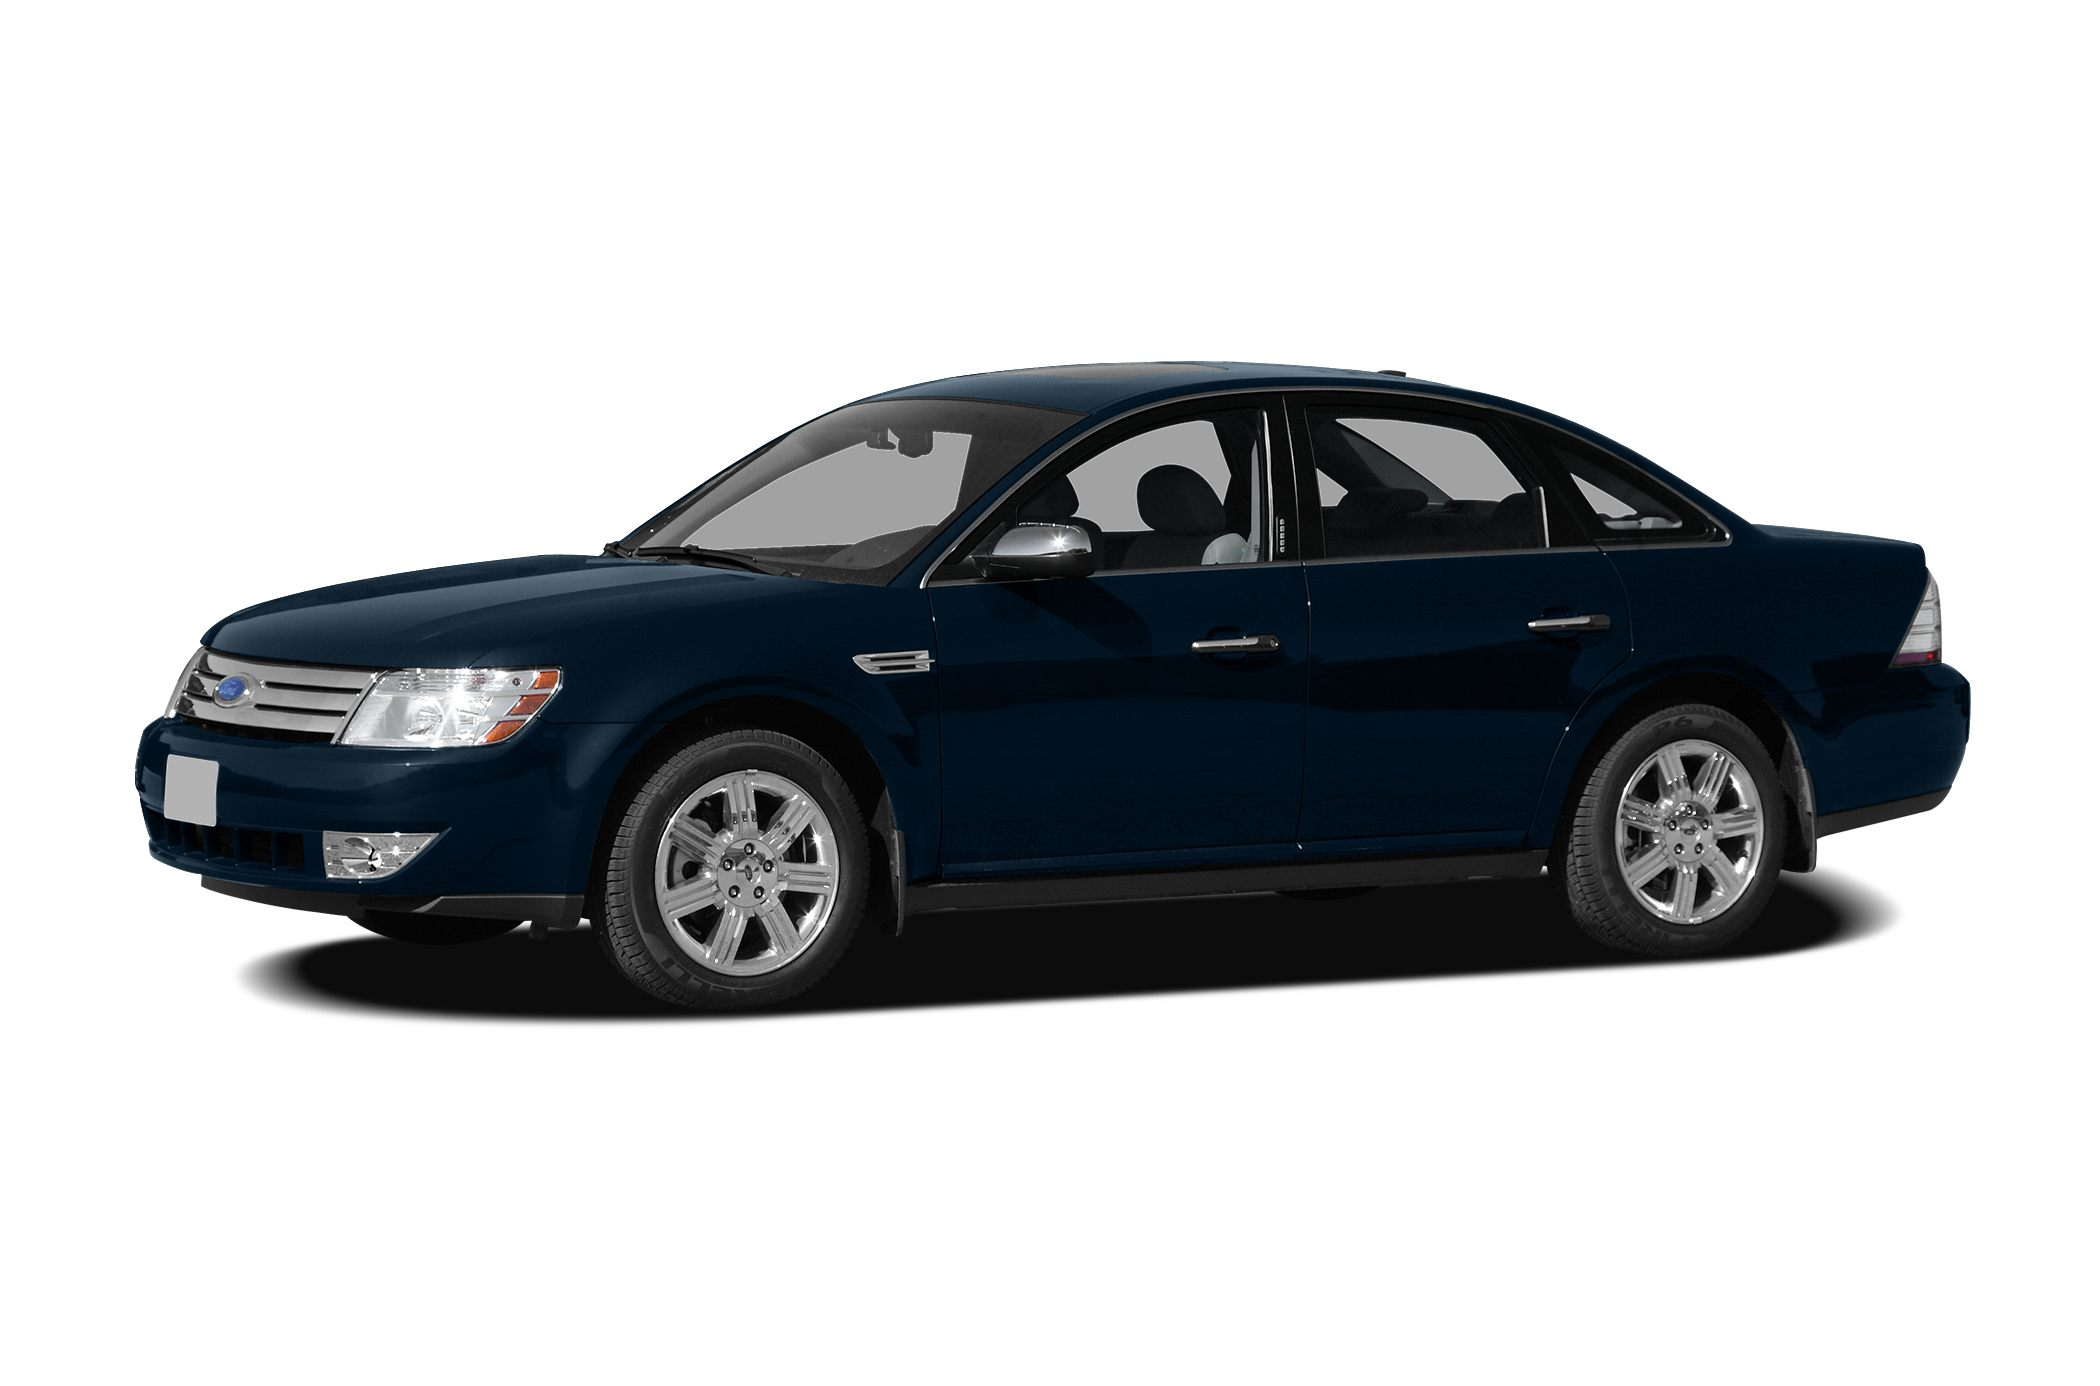 2009 Ford Taurus Limited Sedan for sale in Fort Wayne for $11,281 with 91,672 miles